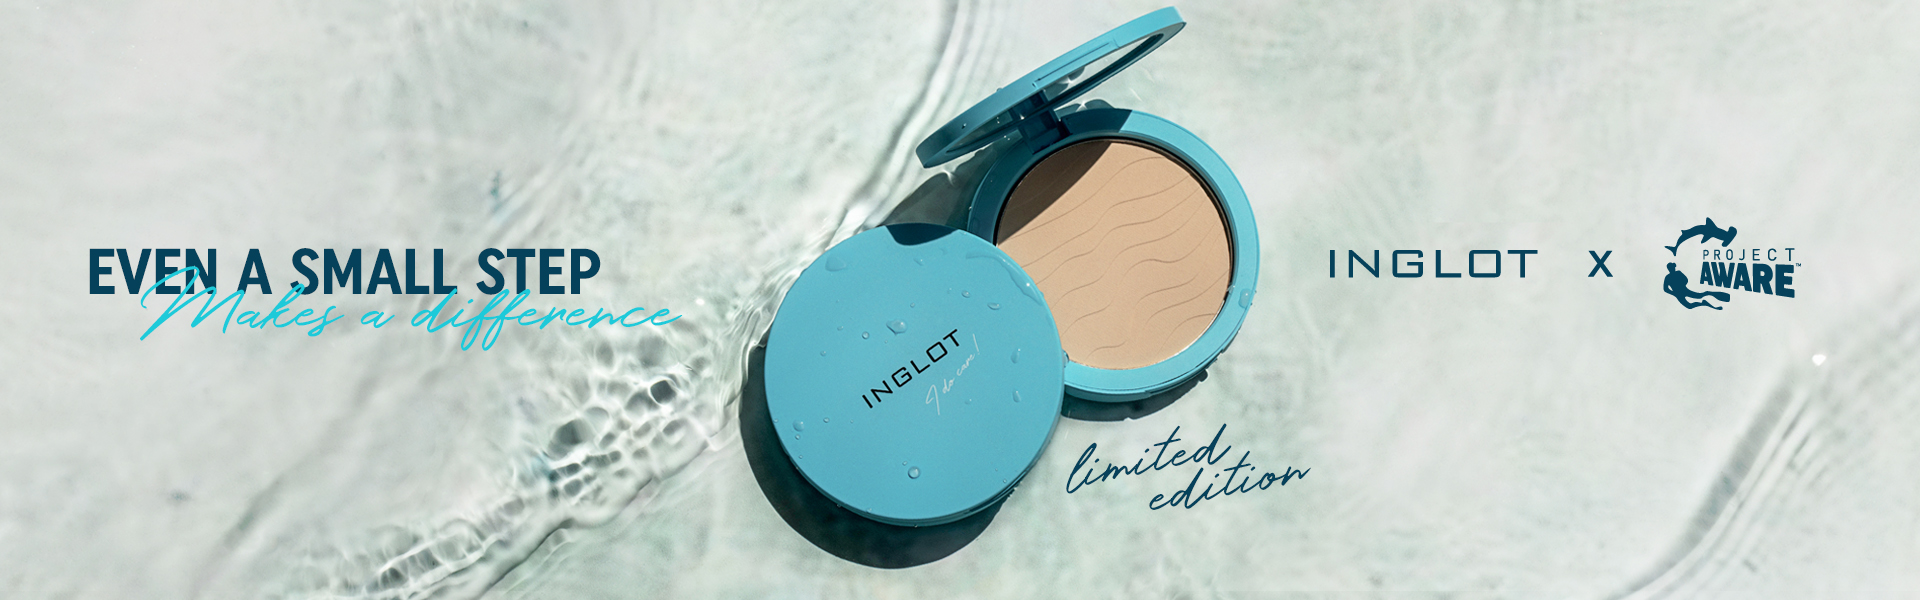 b0ab5079e HOME PAGE - INGLOT Cosmetics – Makeup, Skincare, Nails, Accessories